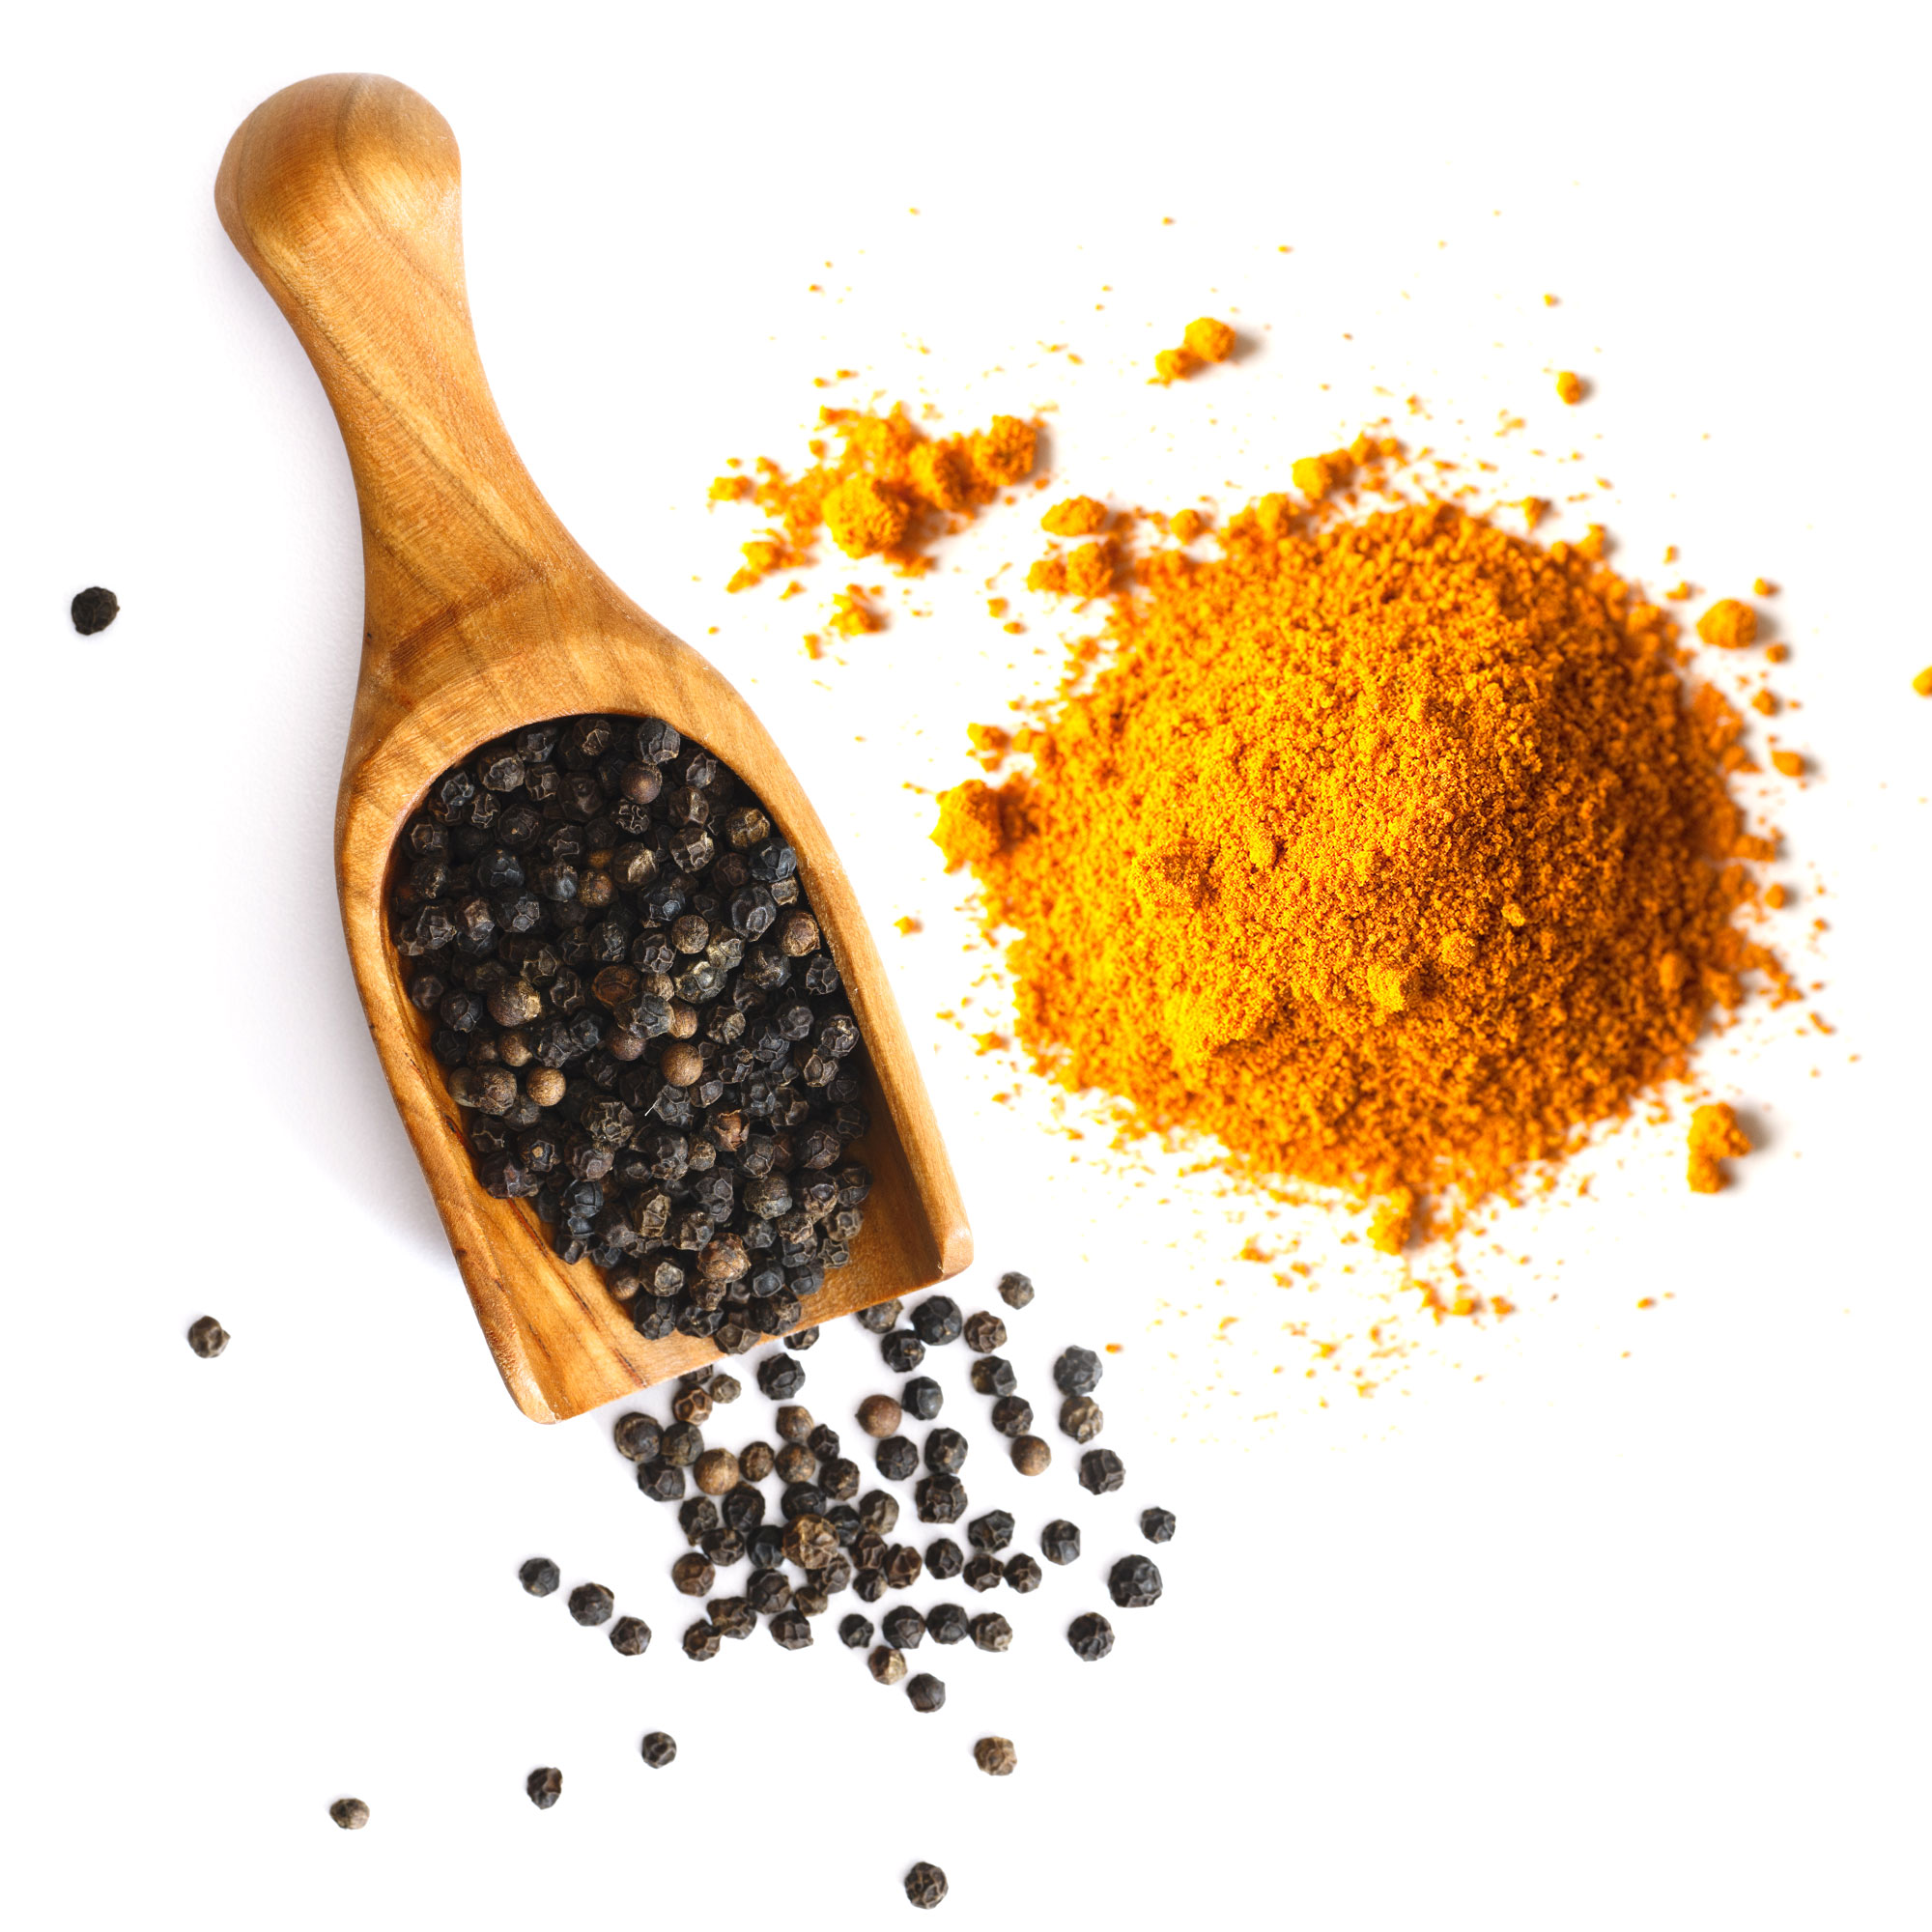 Turmeric + black pepper